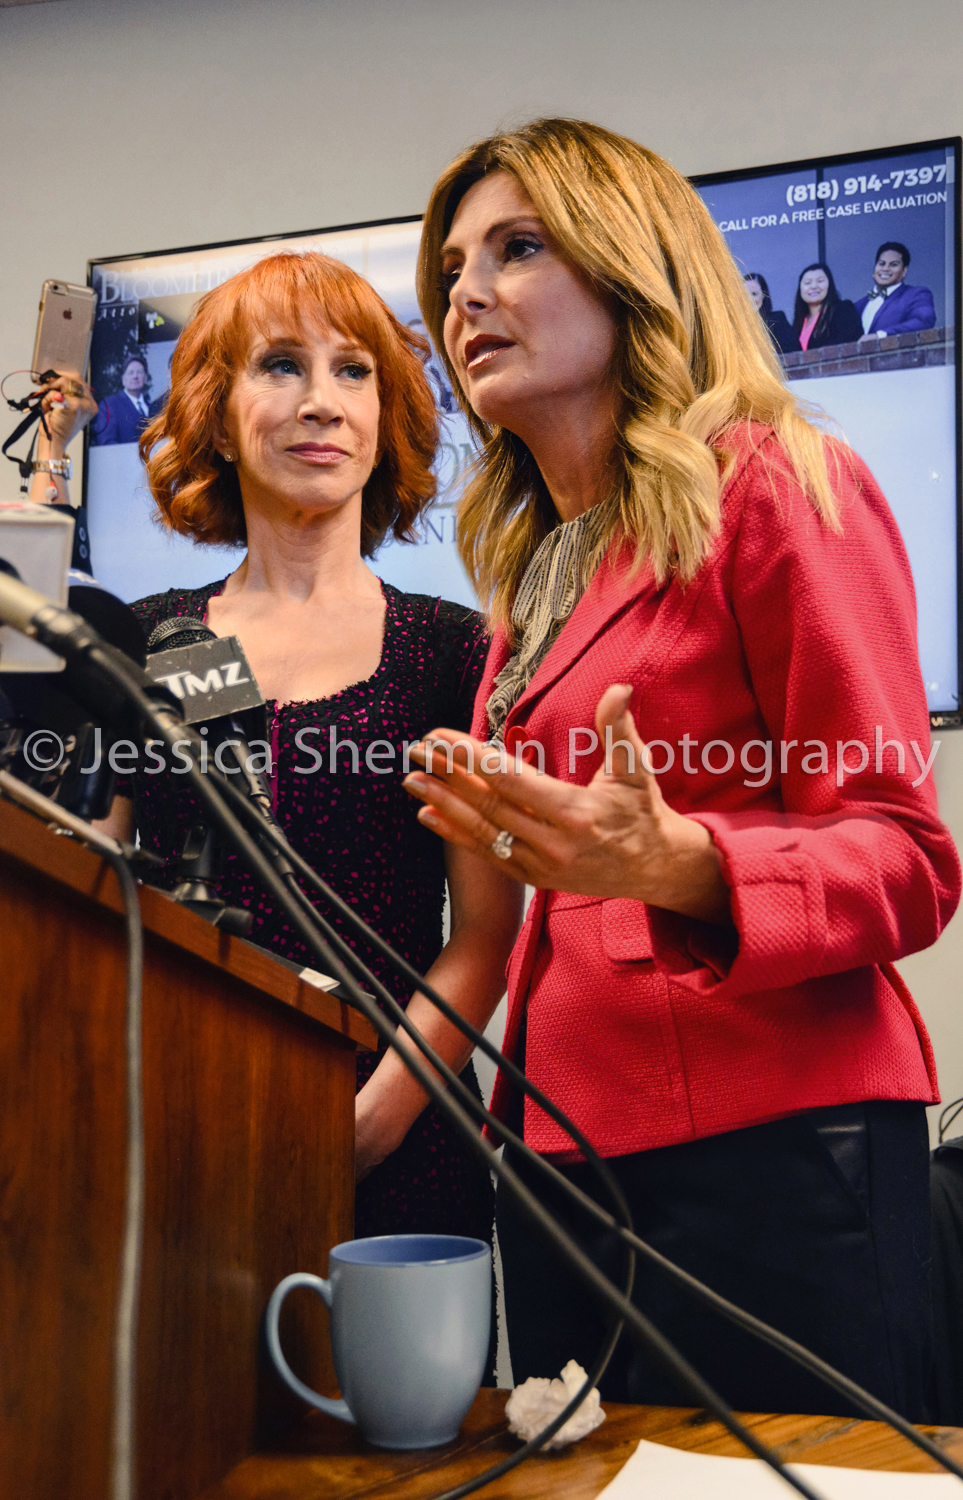 Kathy_Griffin_LB_Jessica_Sherman-8WEB (1 of 1).jpg